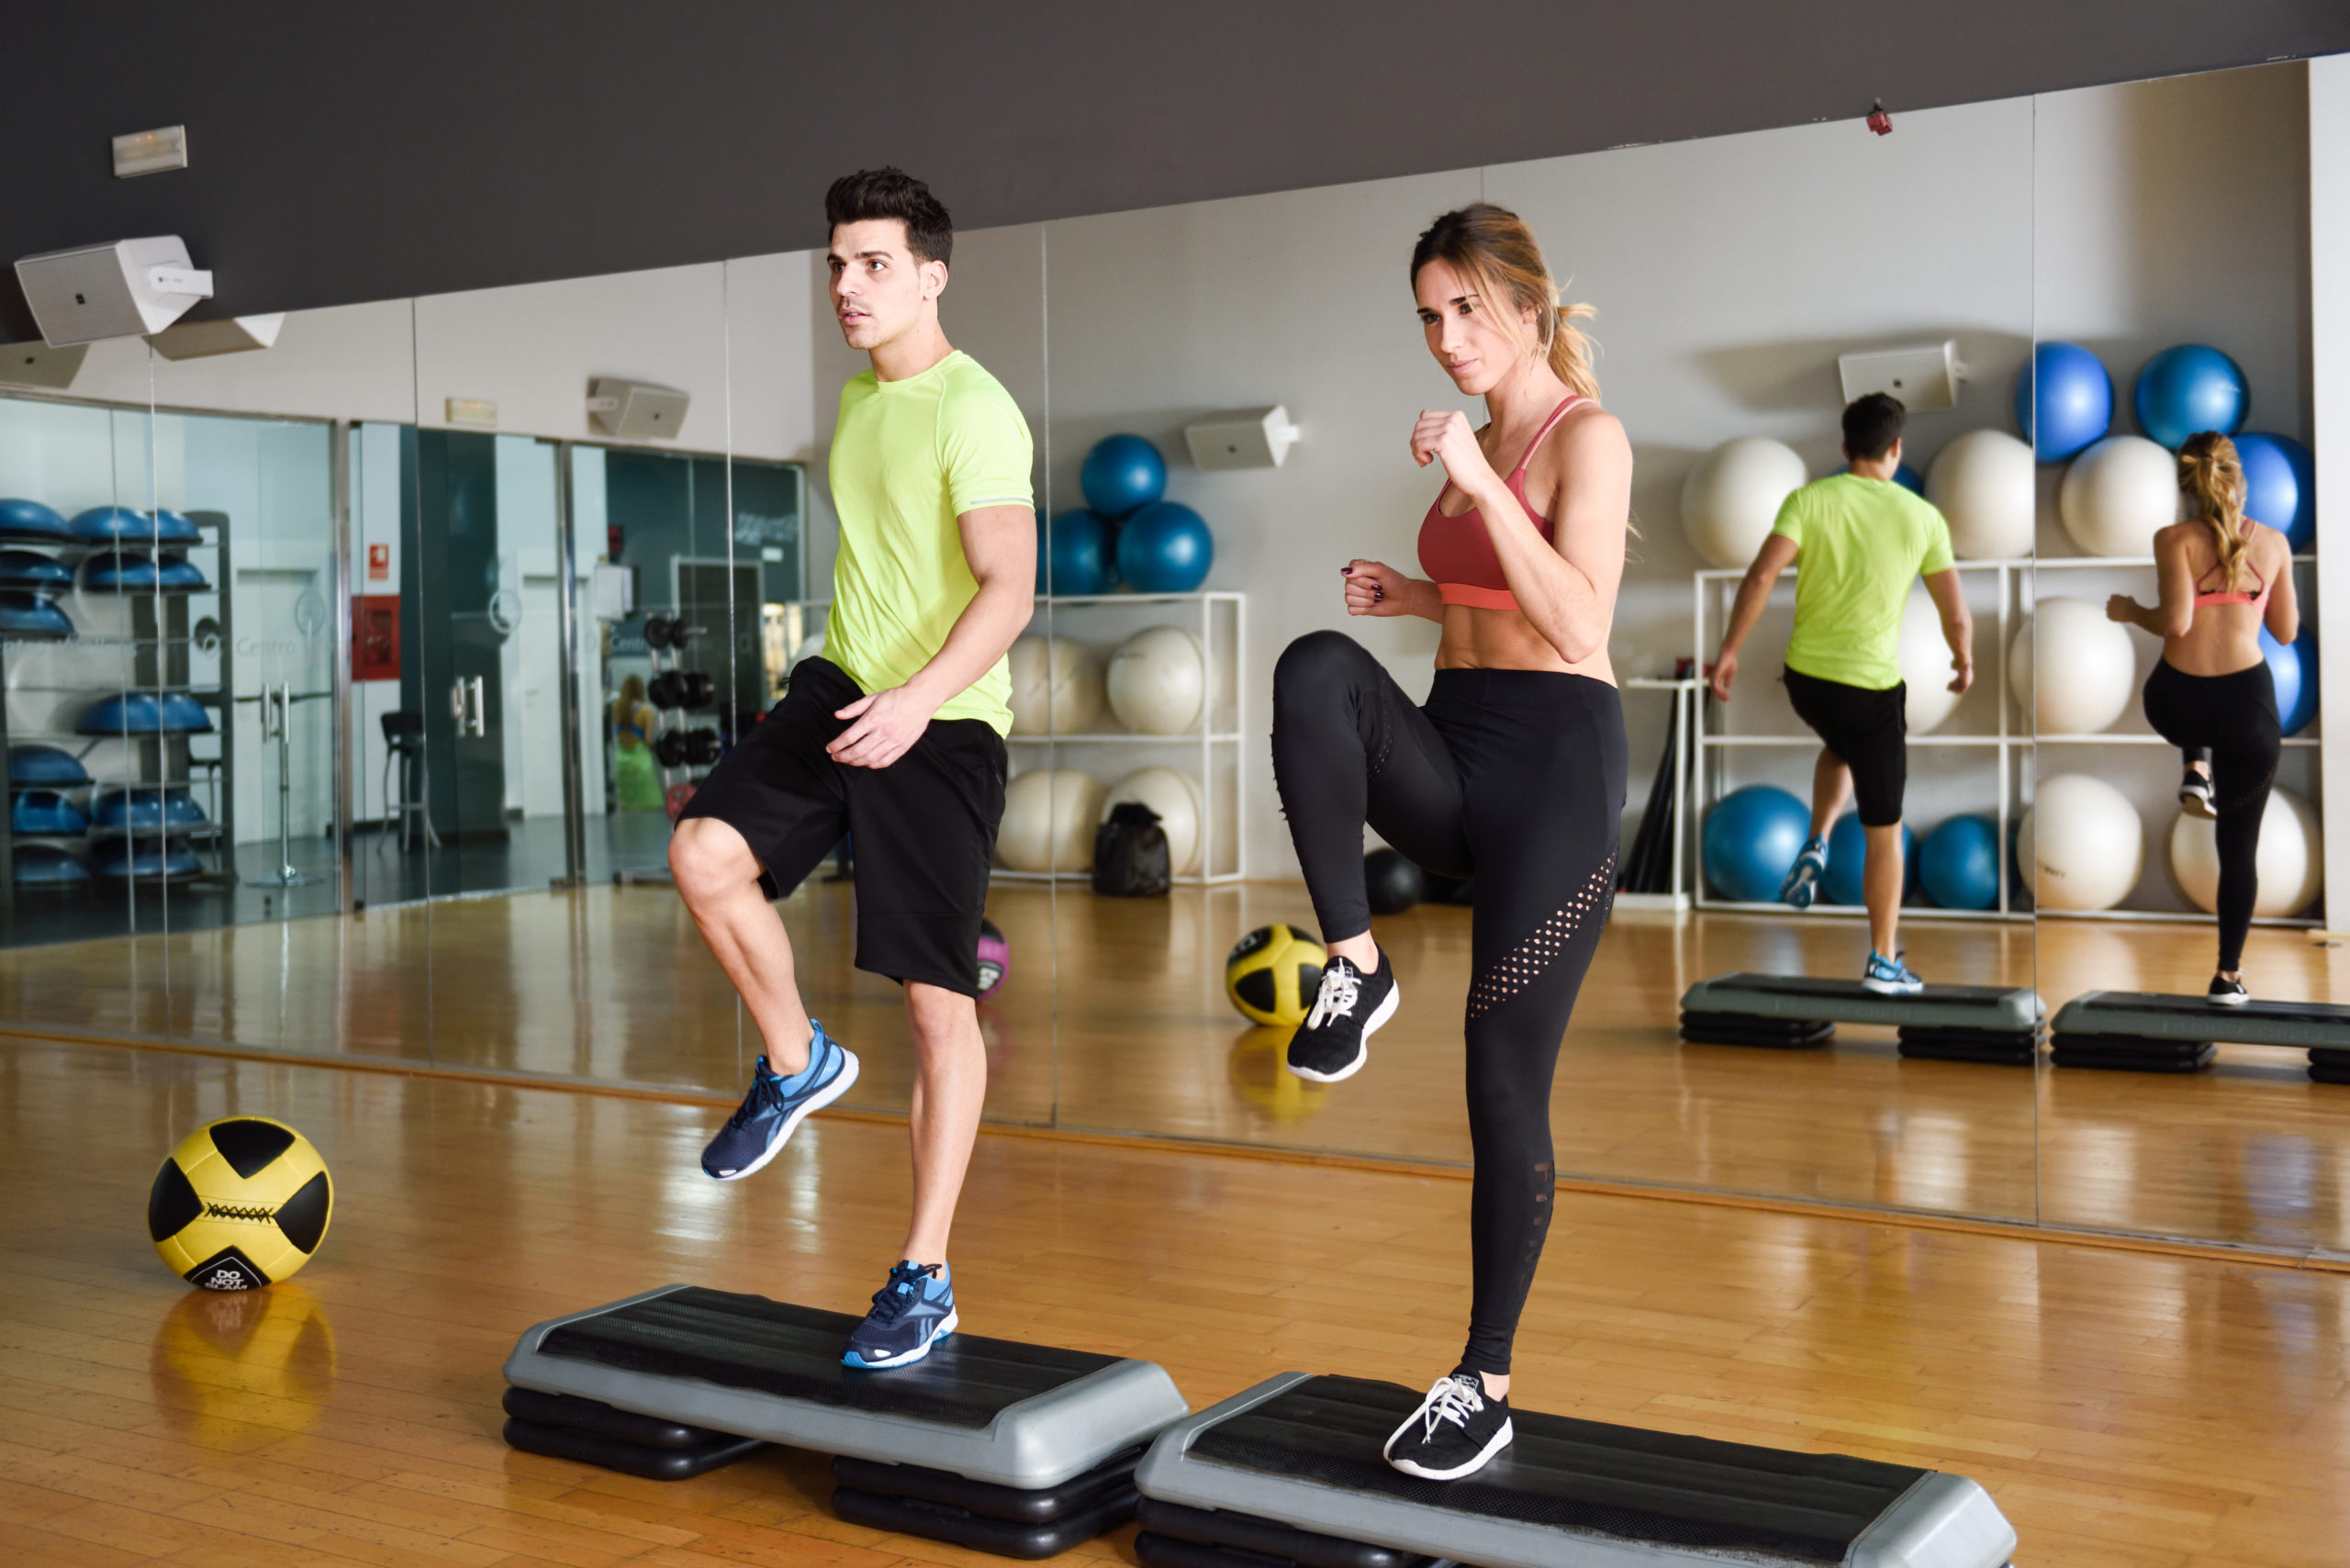 Two people working out with steppers in gym. Man and woman wearing sportswear clothes.